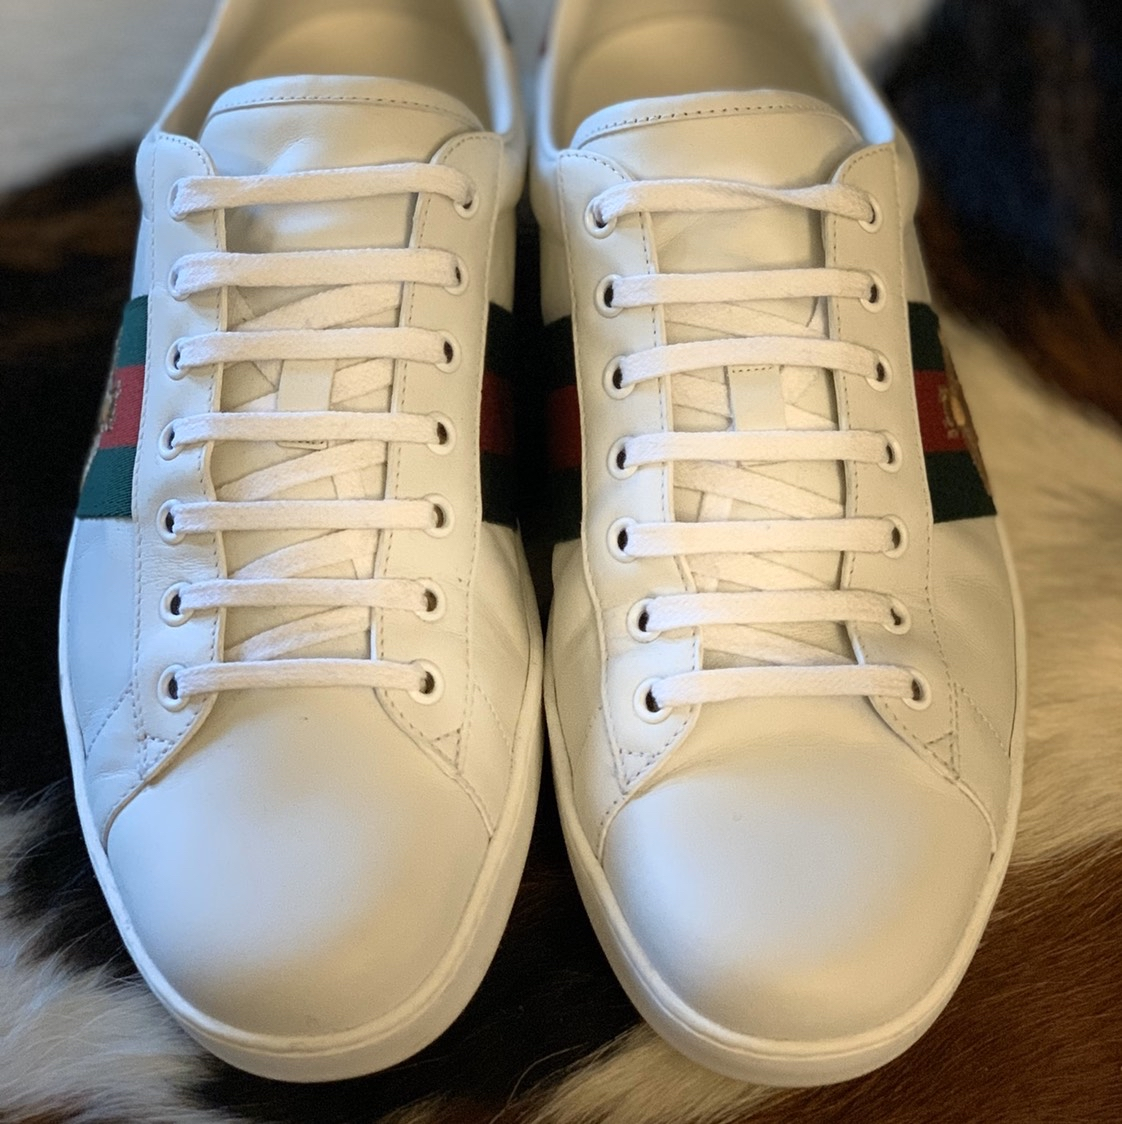 Gucci Ace Embroidered Bee Sneaker Gucci2